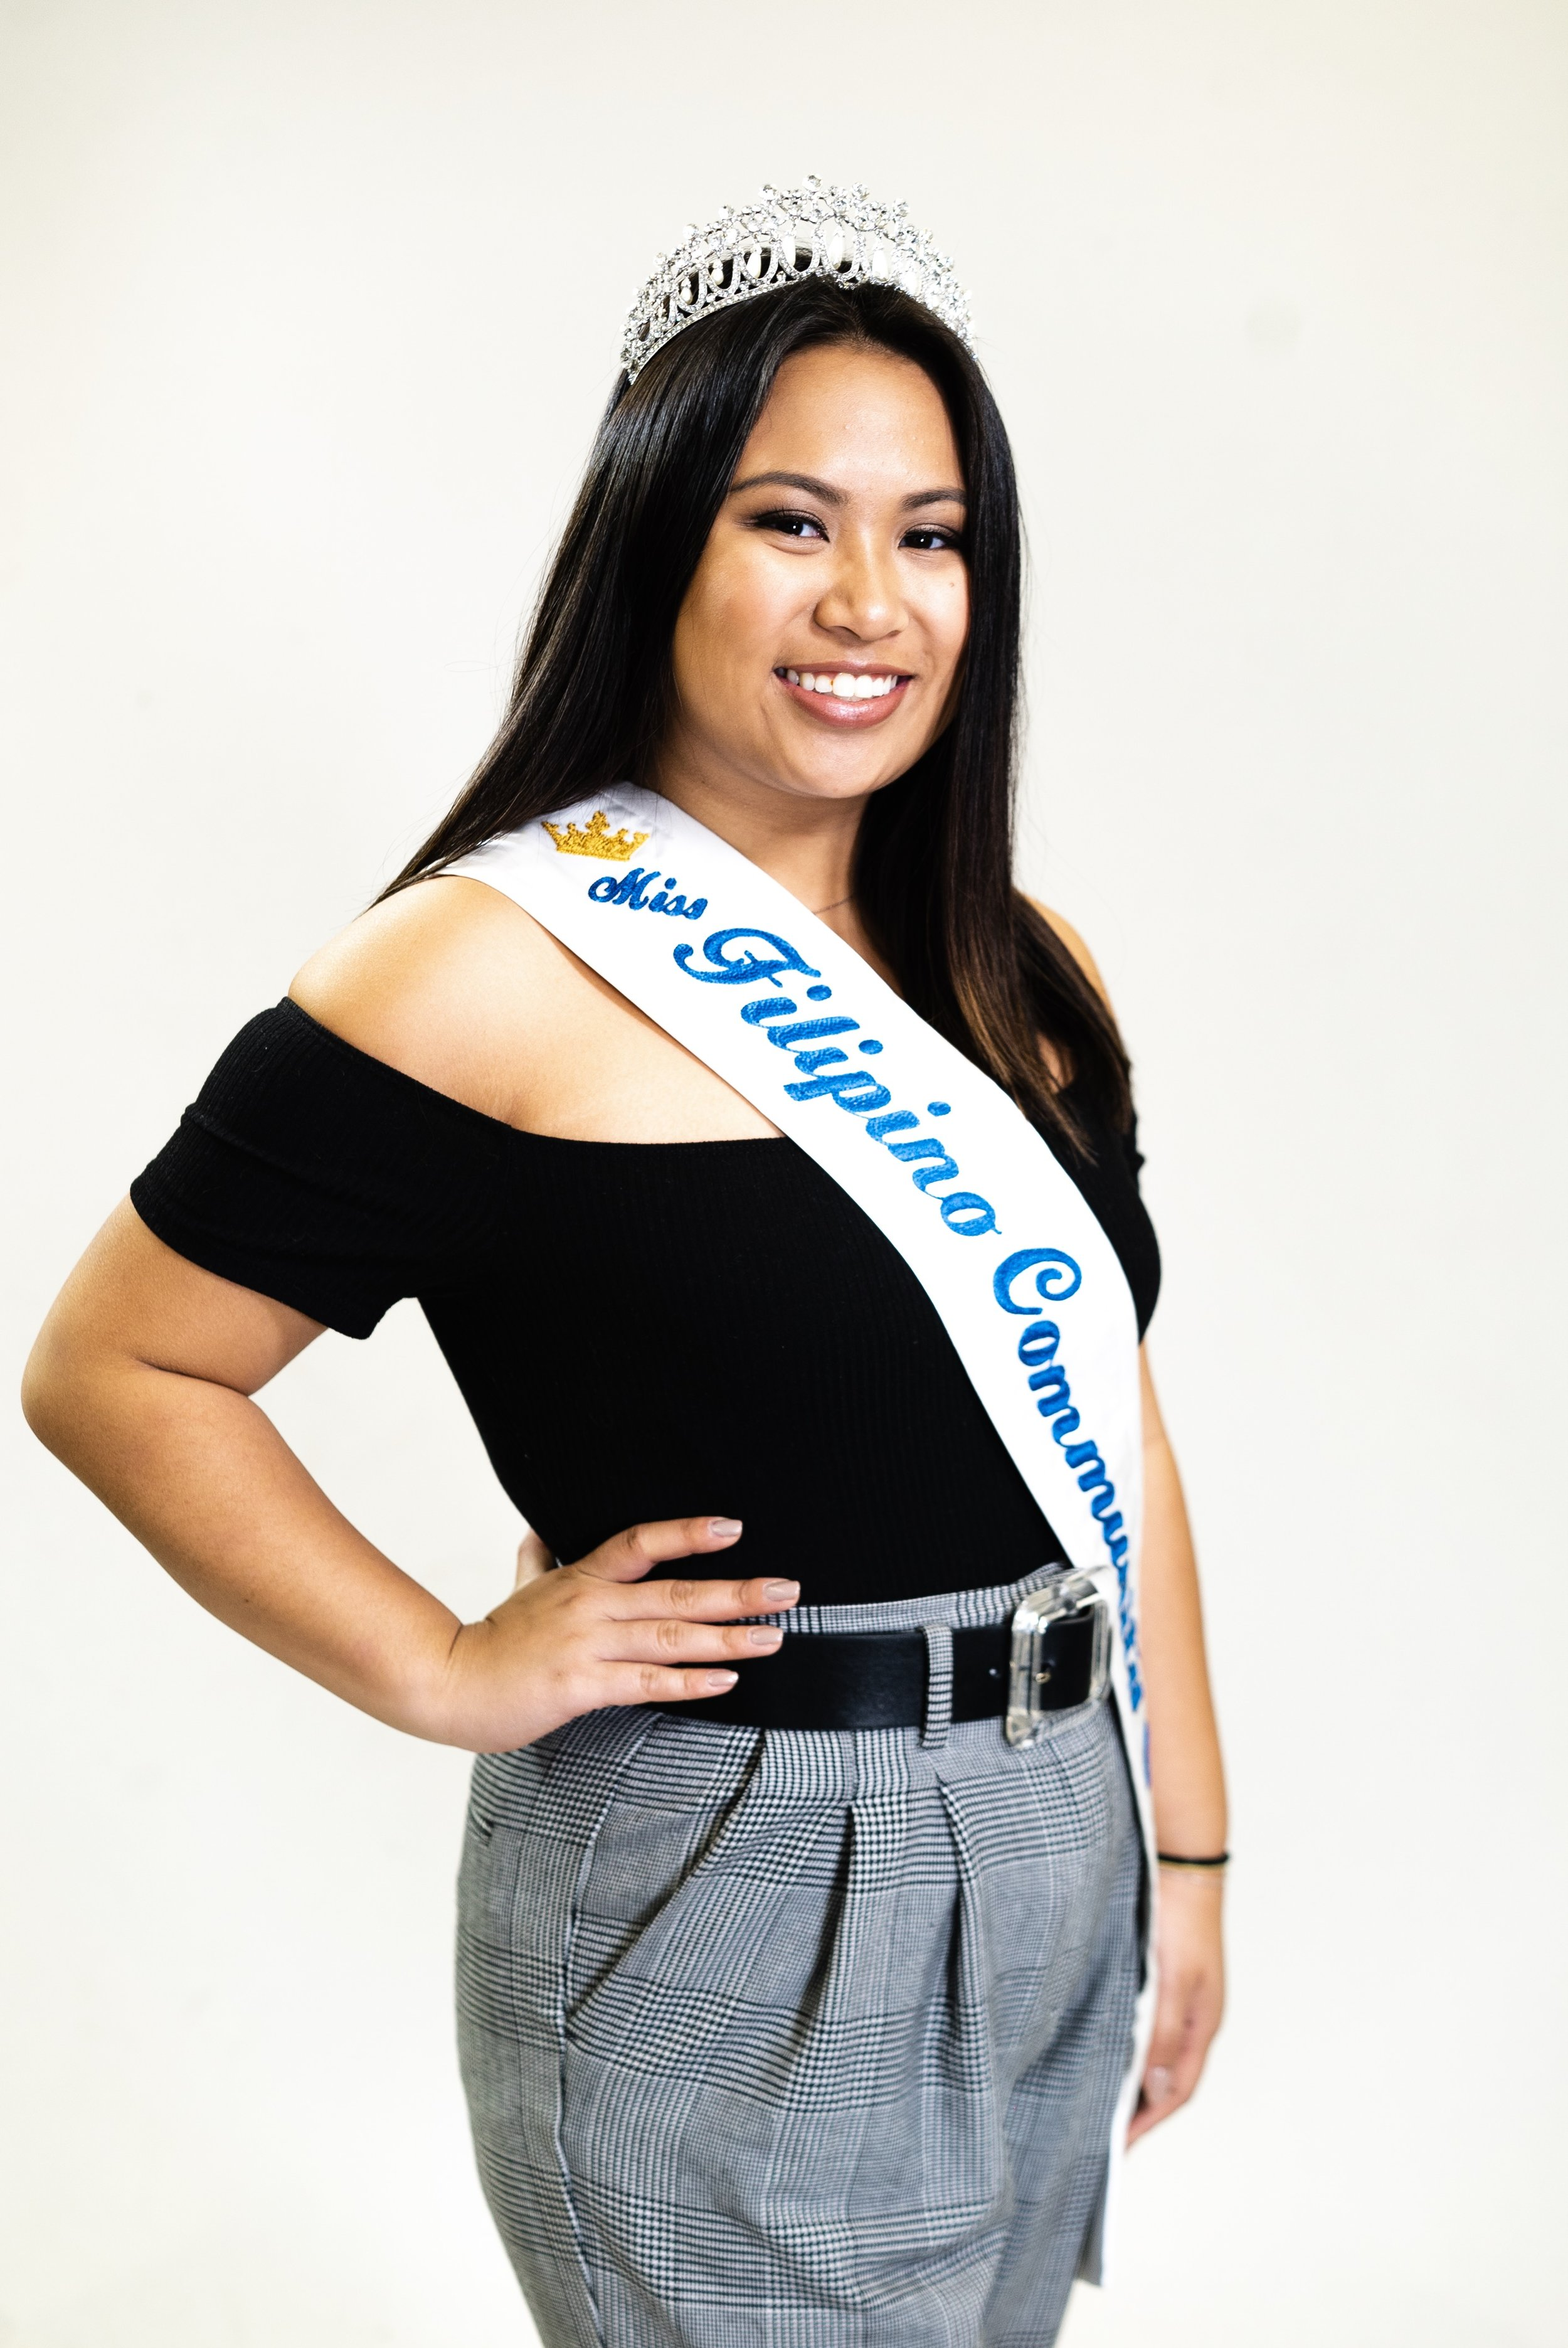 ACHIEVEMENTS - Miss Filipino Community of Seattle 2019-2020Support and Training Manager for the Office of Admissions at Western Washington UniversityStudent in School for International Training's International Honors Program: Cities in the 21st CenturyAmerican Planning Association NW Section Scholarship WinnerResident Camp Counselor for the Associated Washington Student Leader's Chinook Middle Level Leadership CampLuminaria Event Coordinator for the Western Washington University Relay for Life 2016-2019